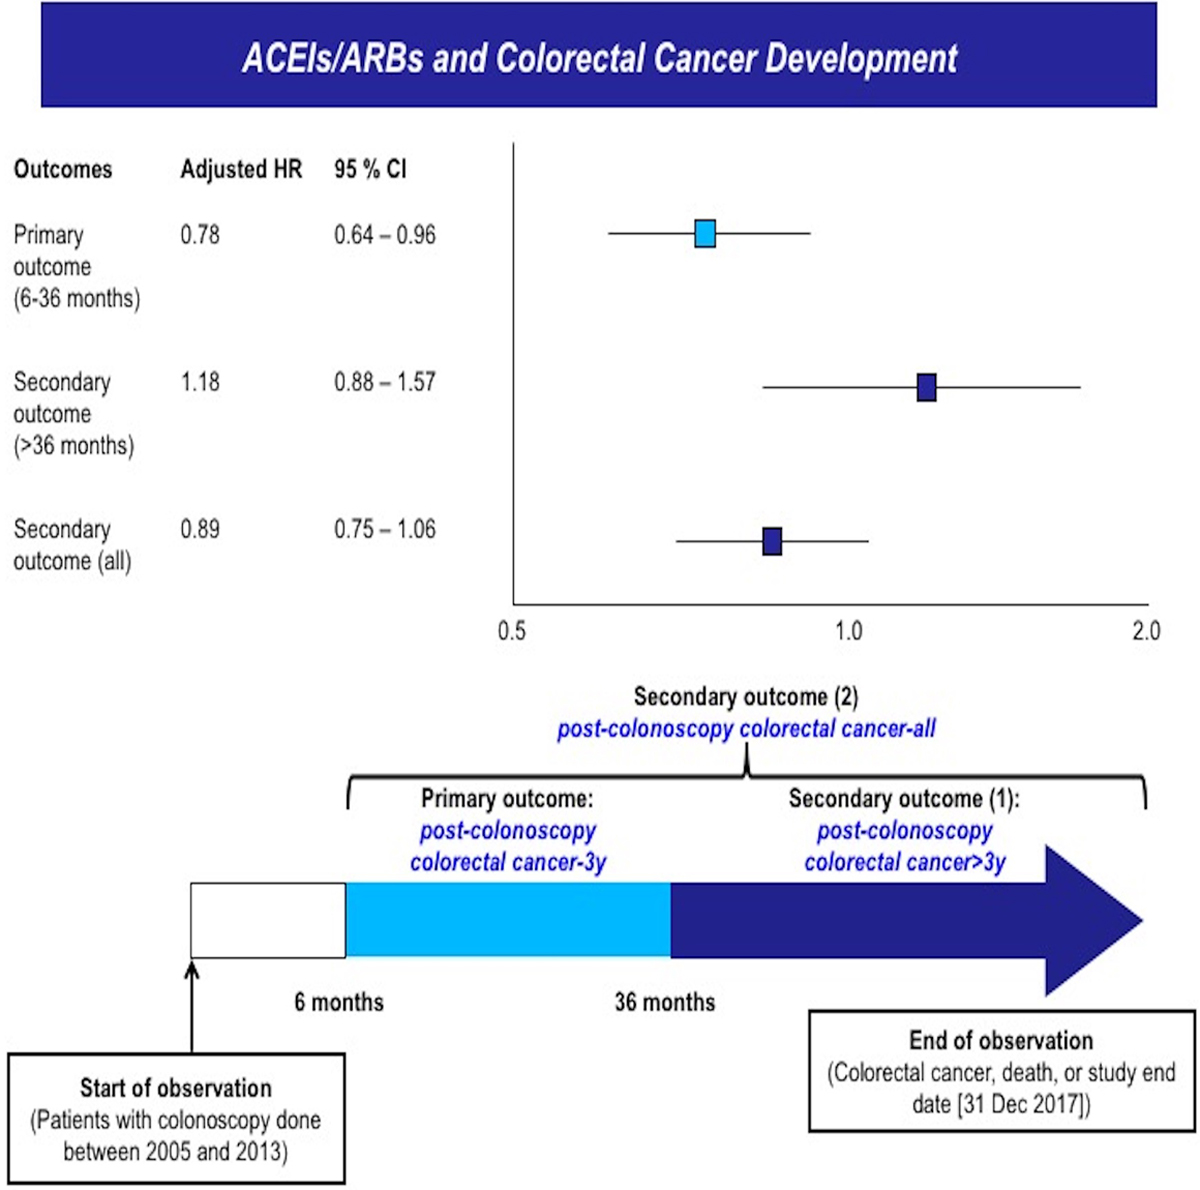 Ace Angiotensin Converting Enzyme Inhibitors Angiotensin Receptor Blockers Are Associated With Lower Colorectal Cancer Risk Hypertension